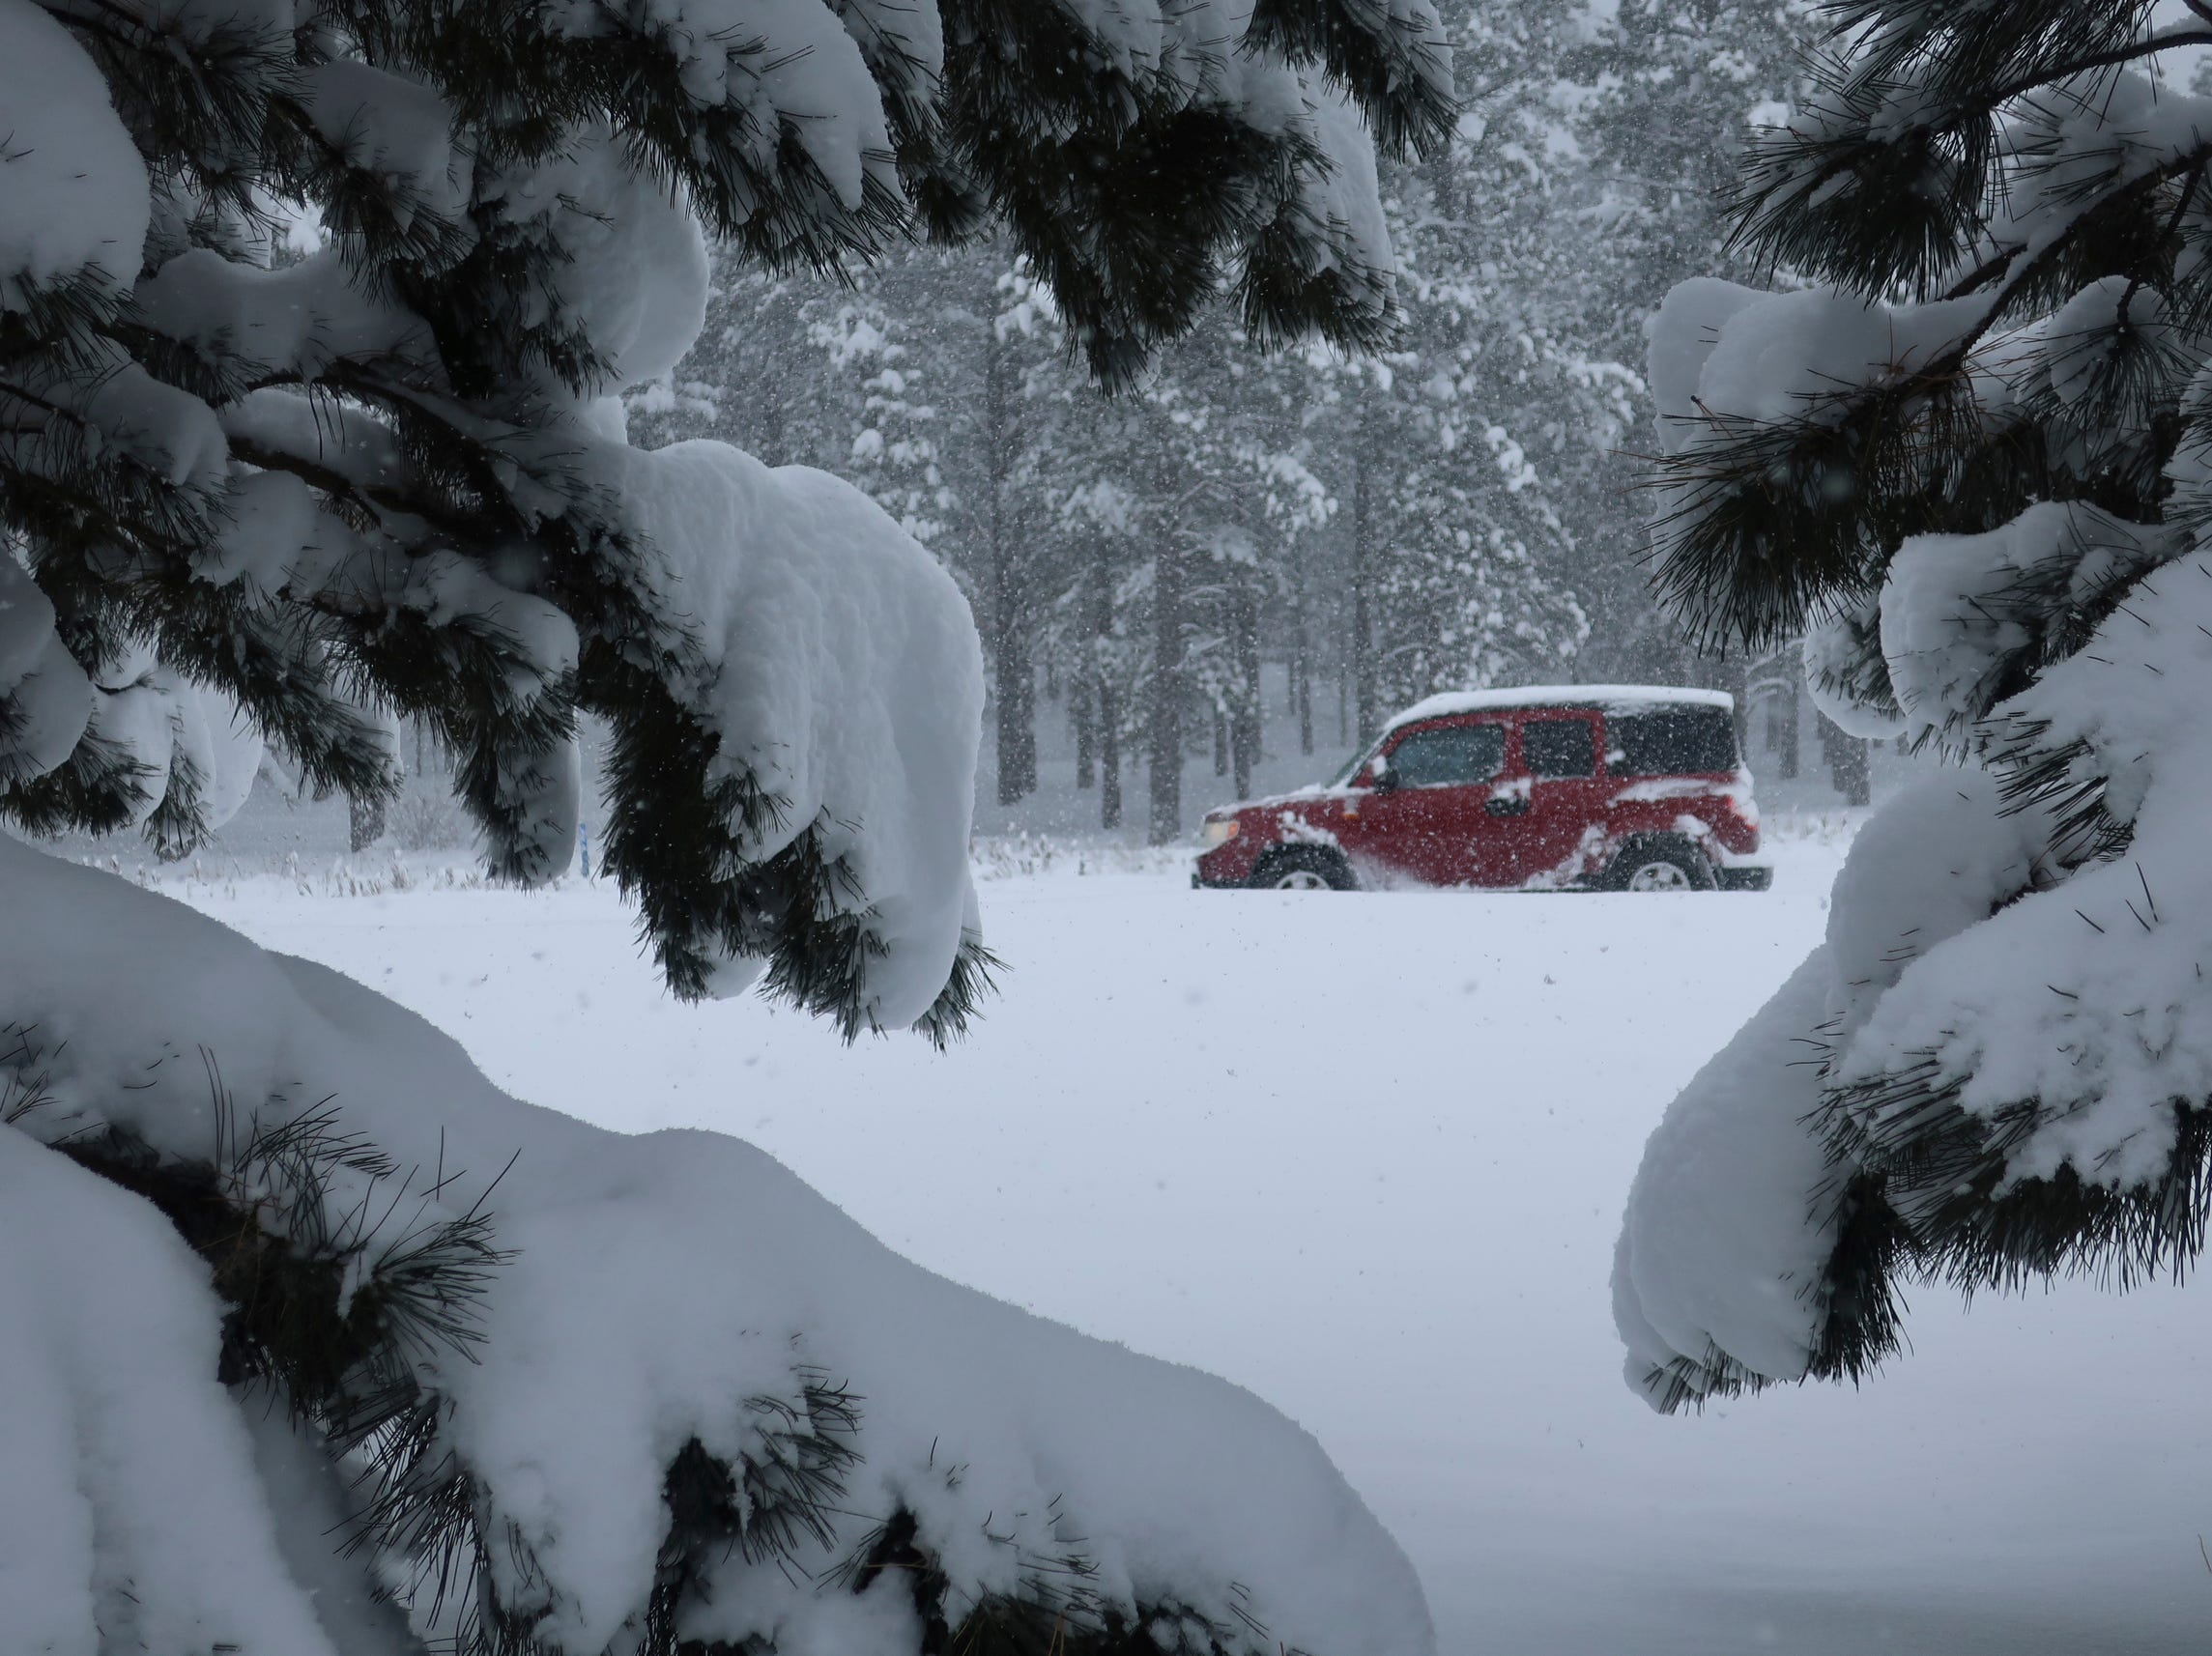 A car drives down Route 66 in Flagstaff, Arizona, on Thursday, Feb. 21, 2019. Schools across northern Arizona canceled classes and some government offices decided to close amid a winter storm that's expected to dump heavy snow in the region.